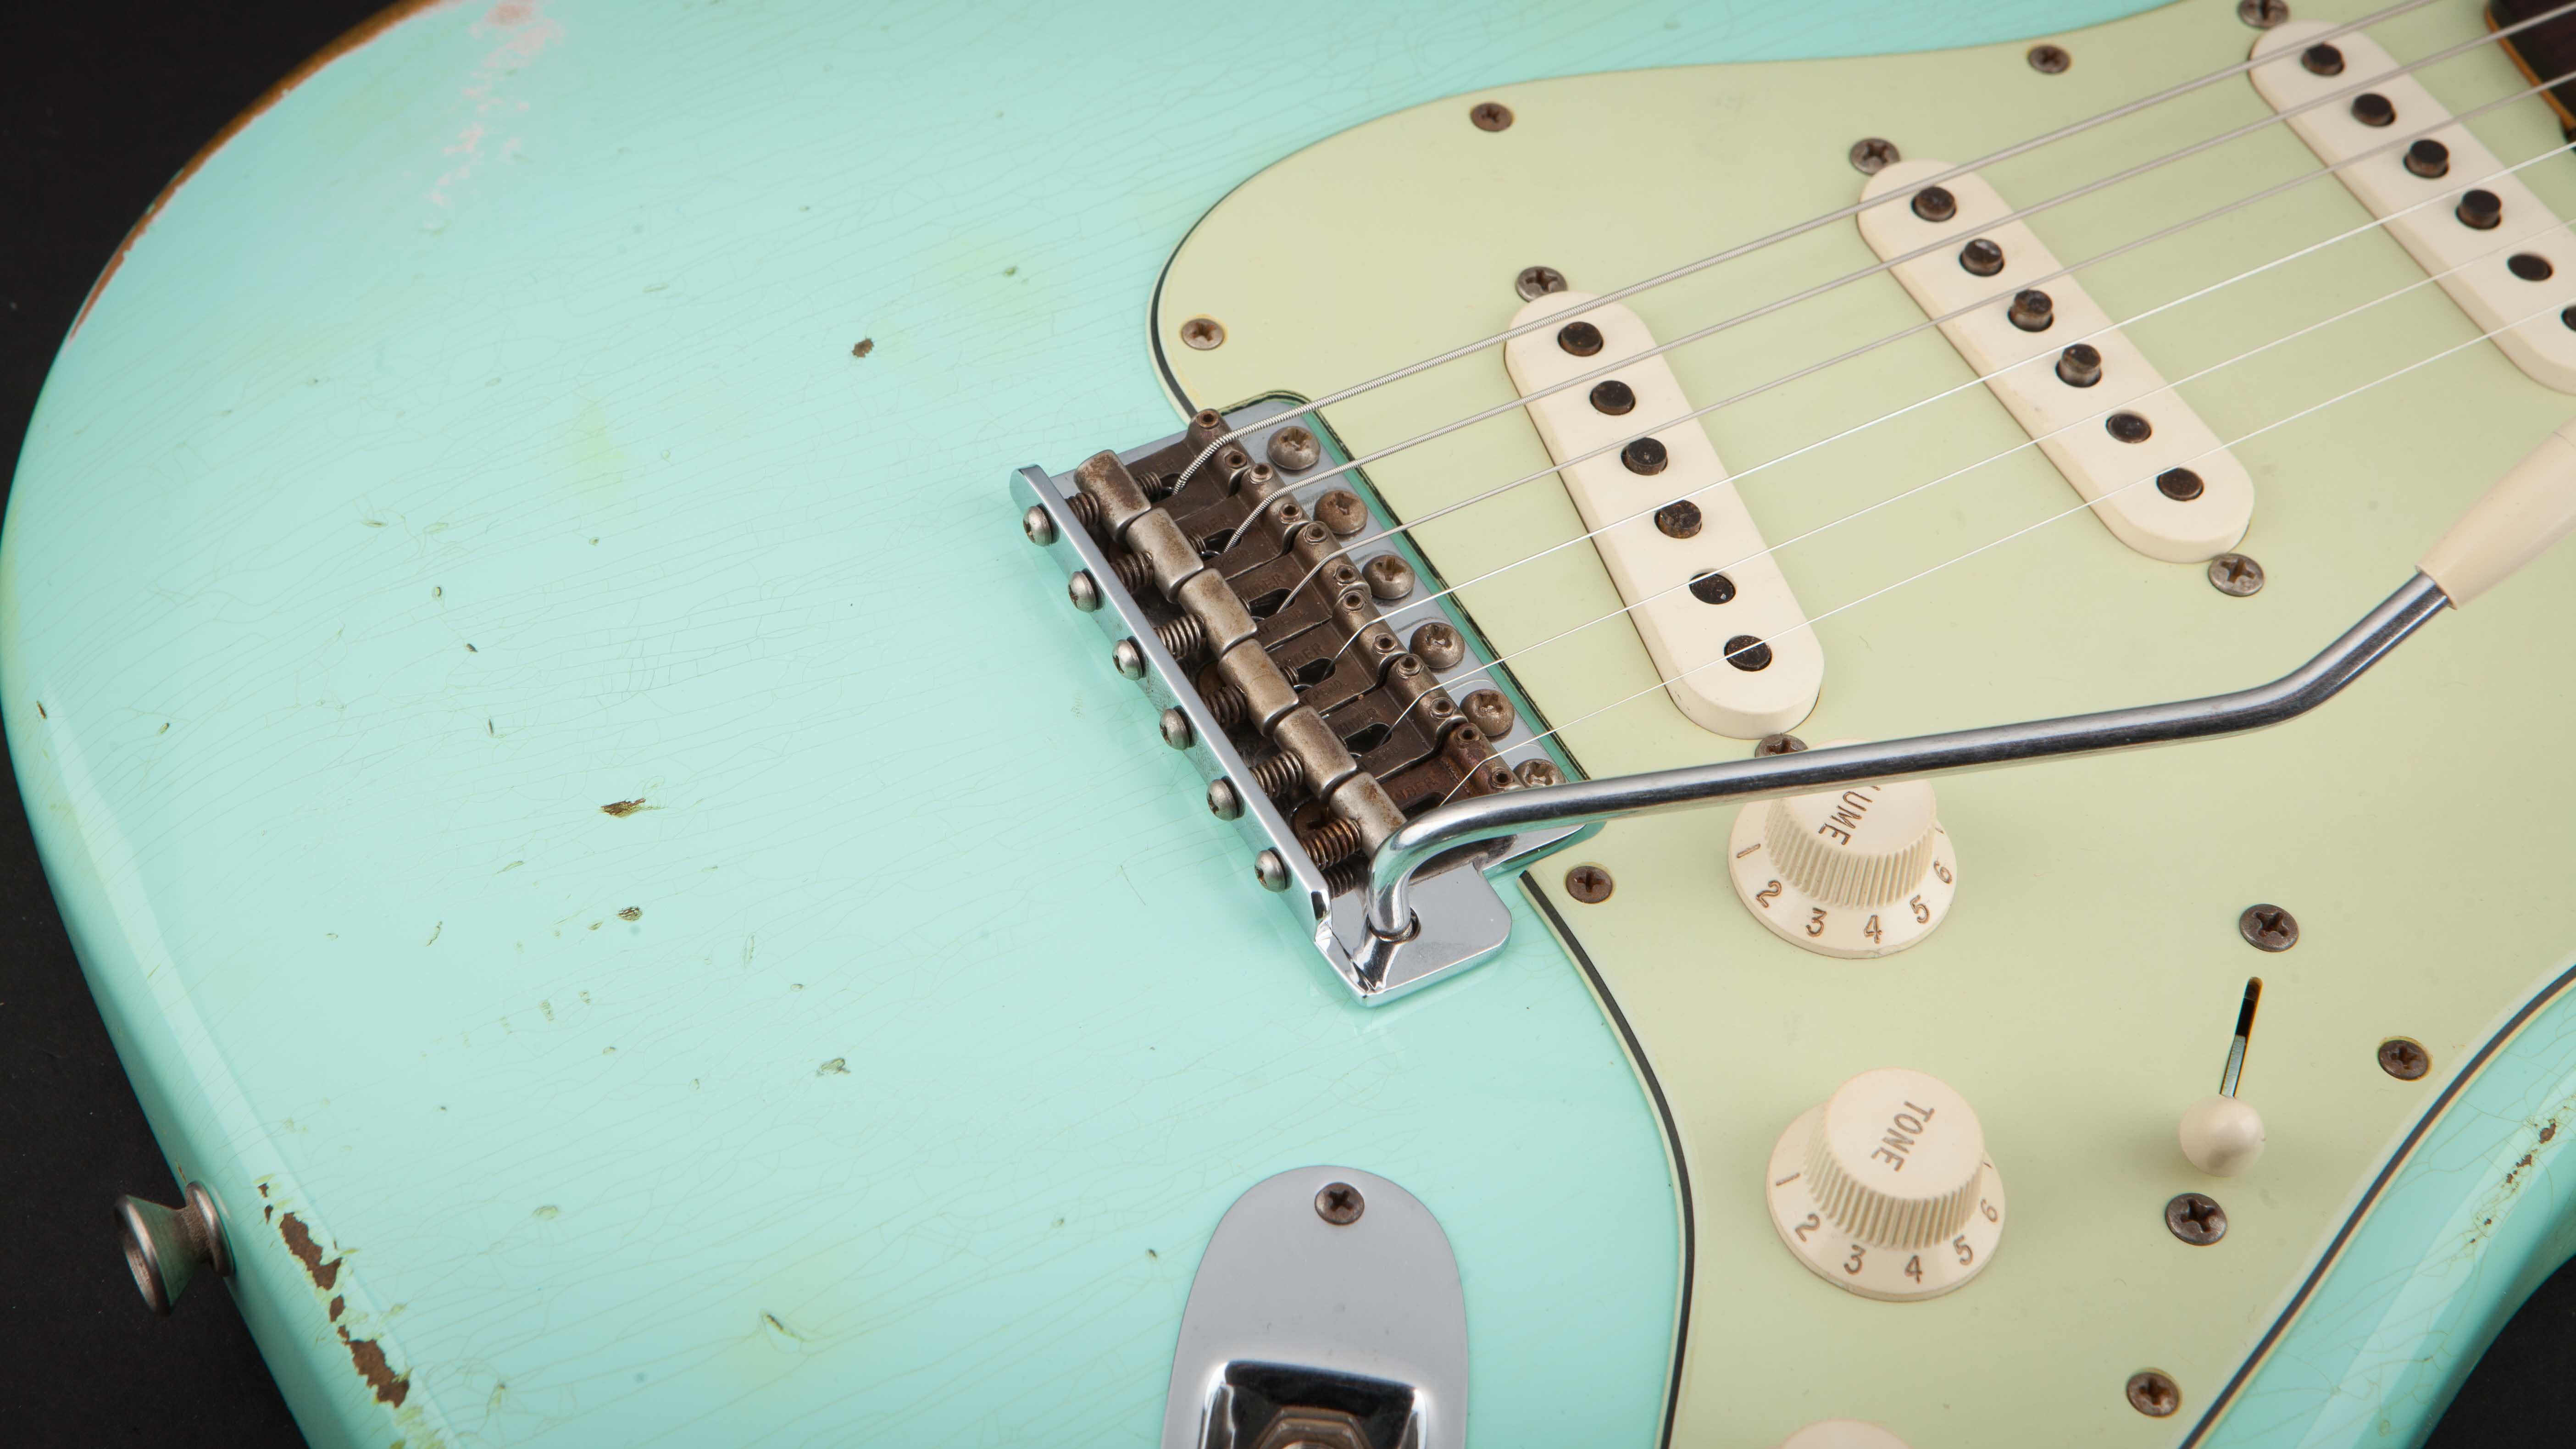 Fender Custom Shop Stratocaster 60 Surf Green Relic #R84347